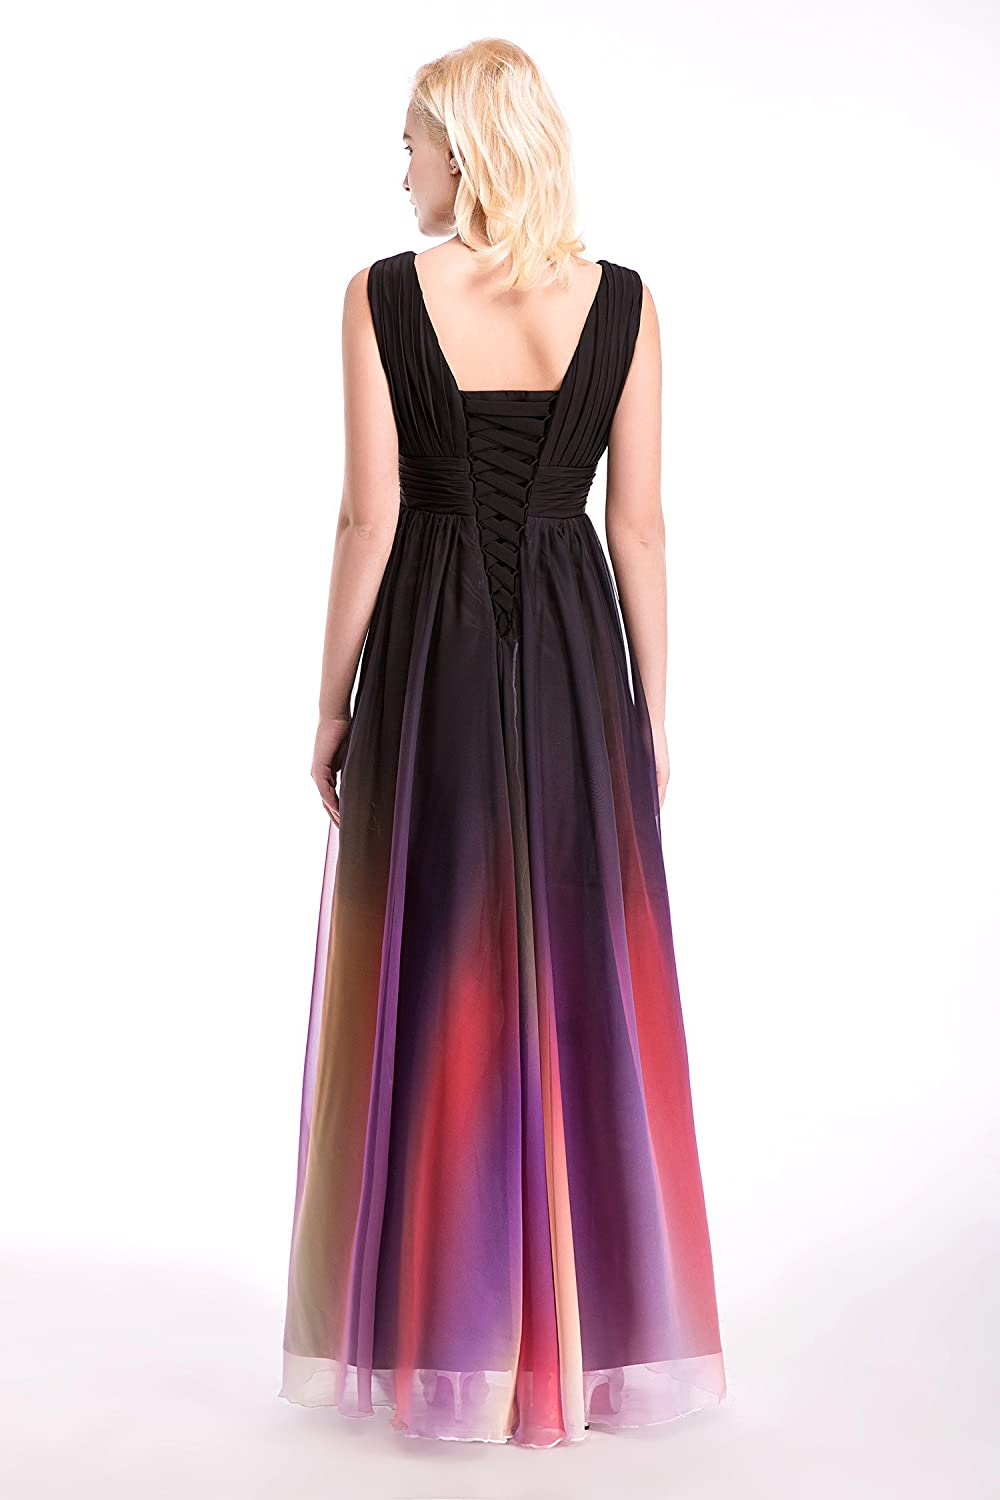 Dressystar Womens Ombre Chiffon Evening Dresses Long Prom Gown Assorted Necklines Size 30W C: Amazon.co.uk: Clothing